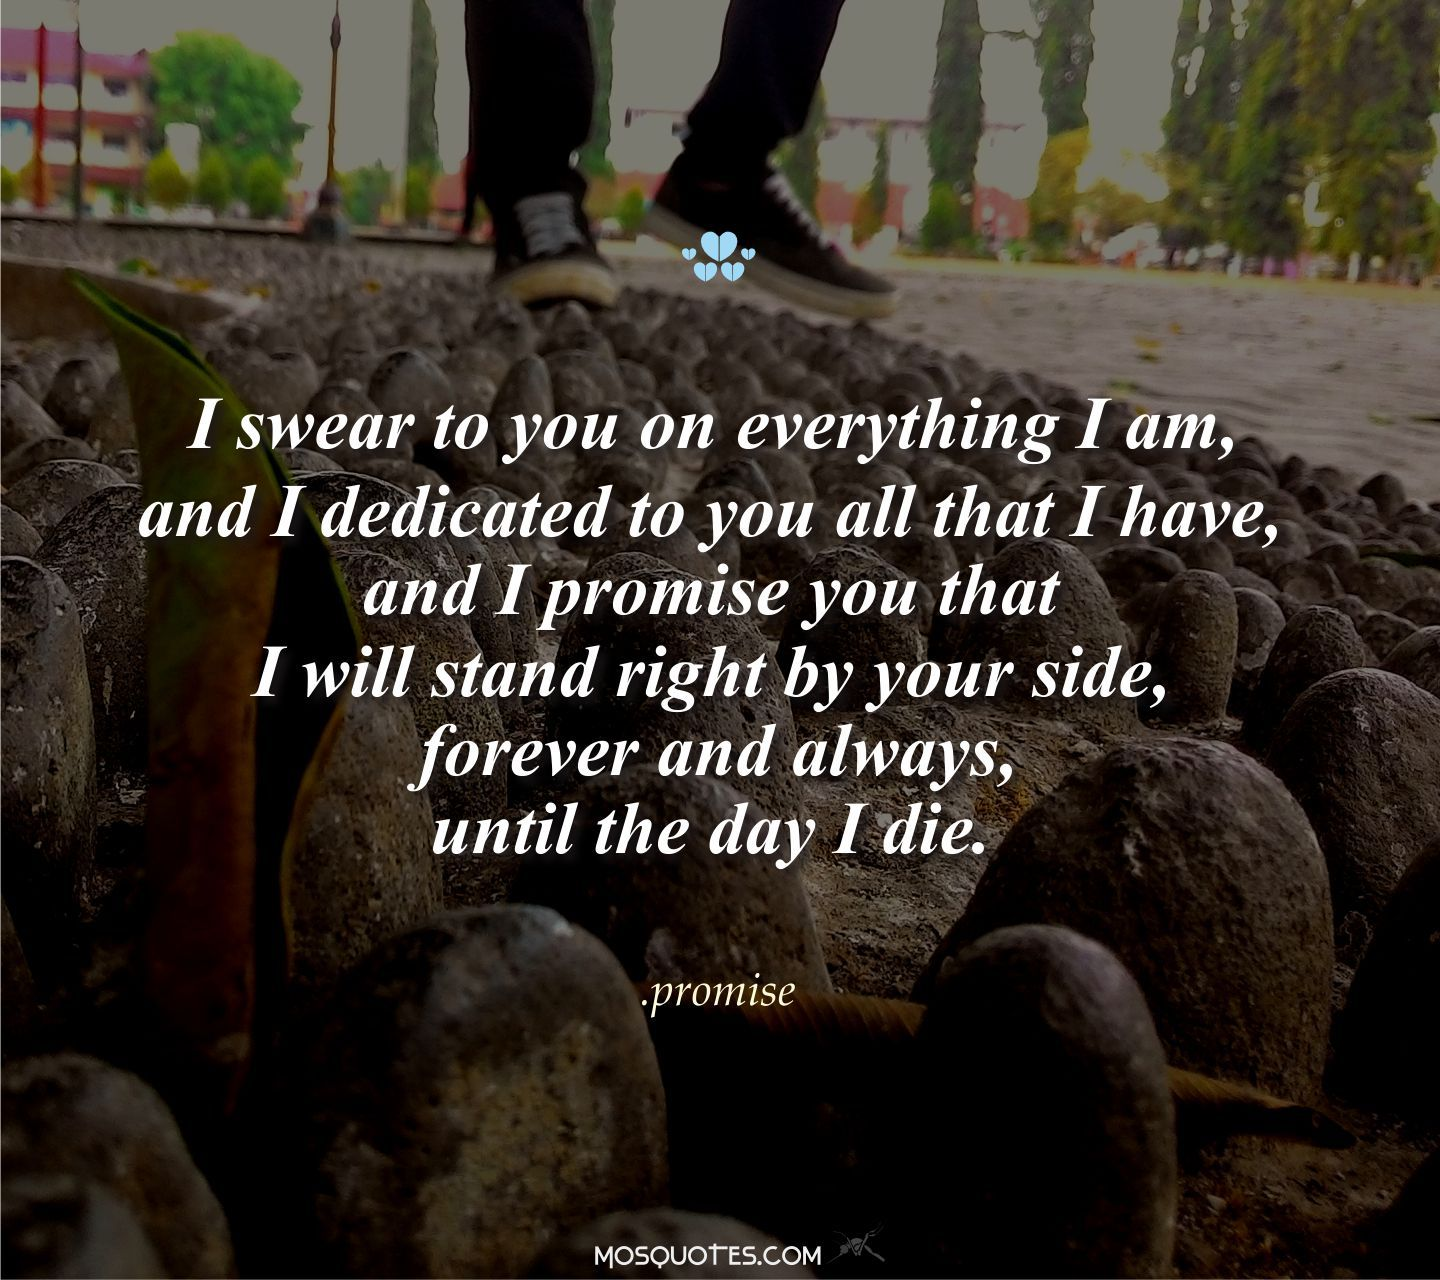 Cute Emo Love Quotes I promise you that I will stand right by your side Forever